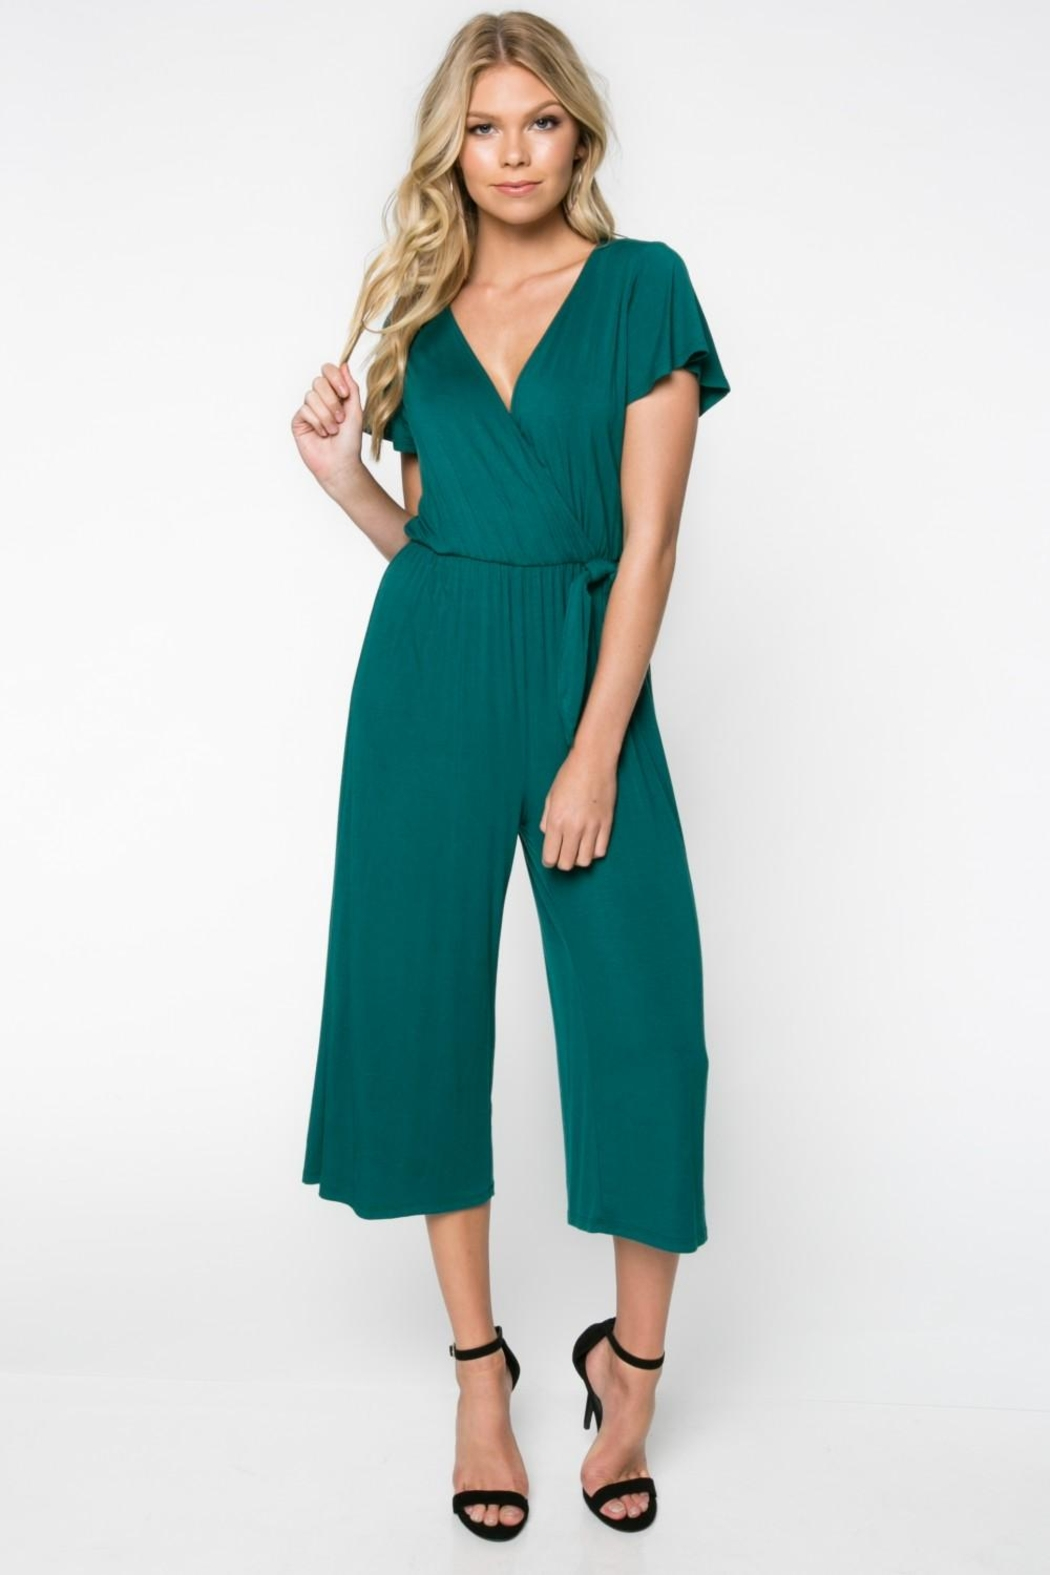 Everly Green Cropped Jumpsuit - Main Image